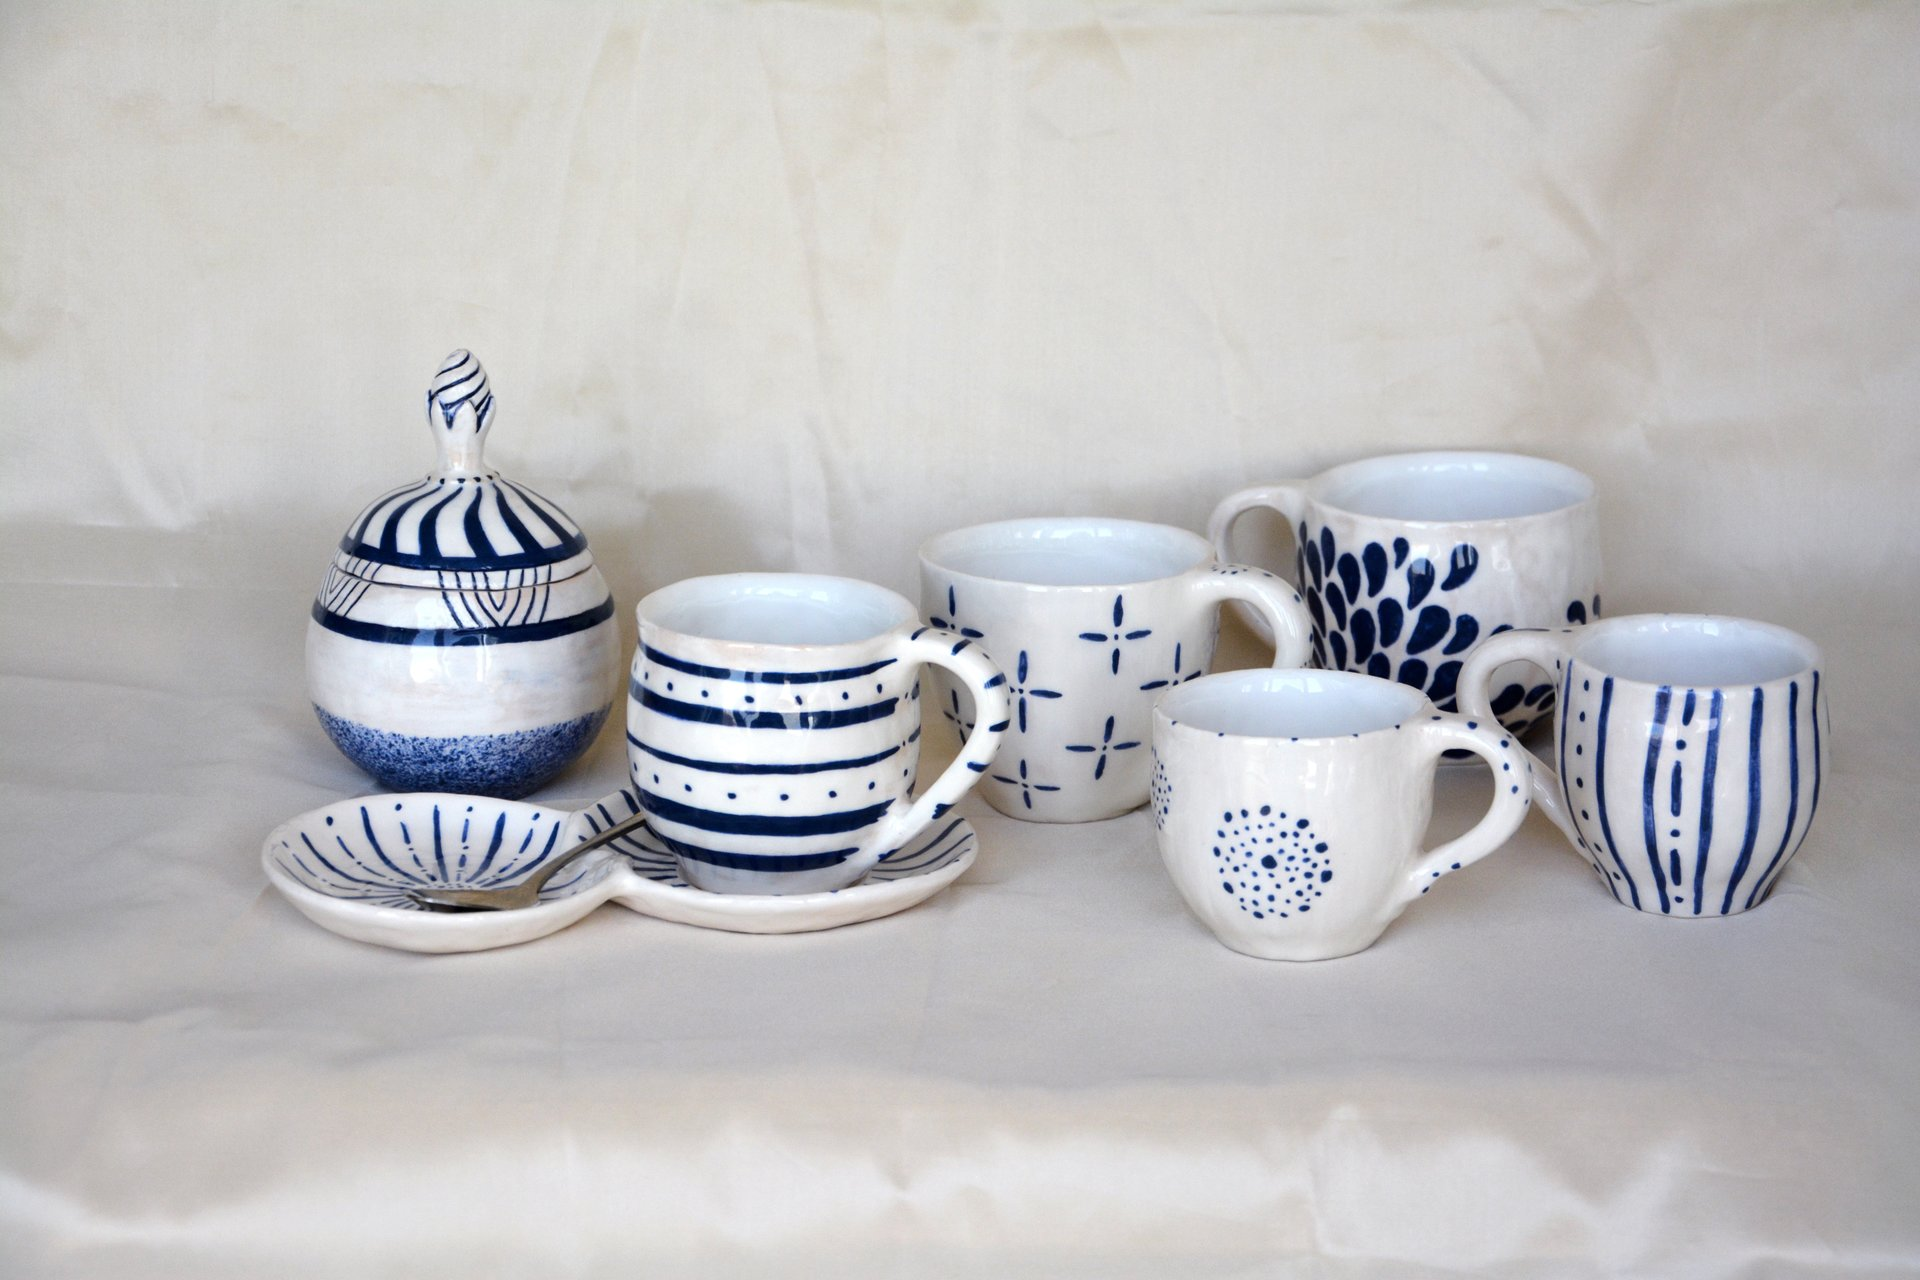 A set of cups plus sugar bowl Modern gzhel - Cups, glasses, mugs, 150 ml - 300 ml, photo 1 of 2.